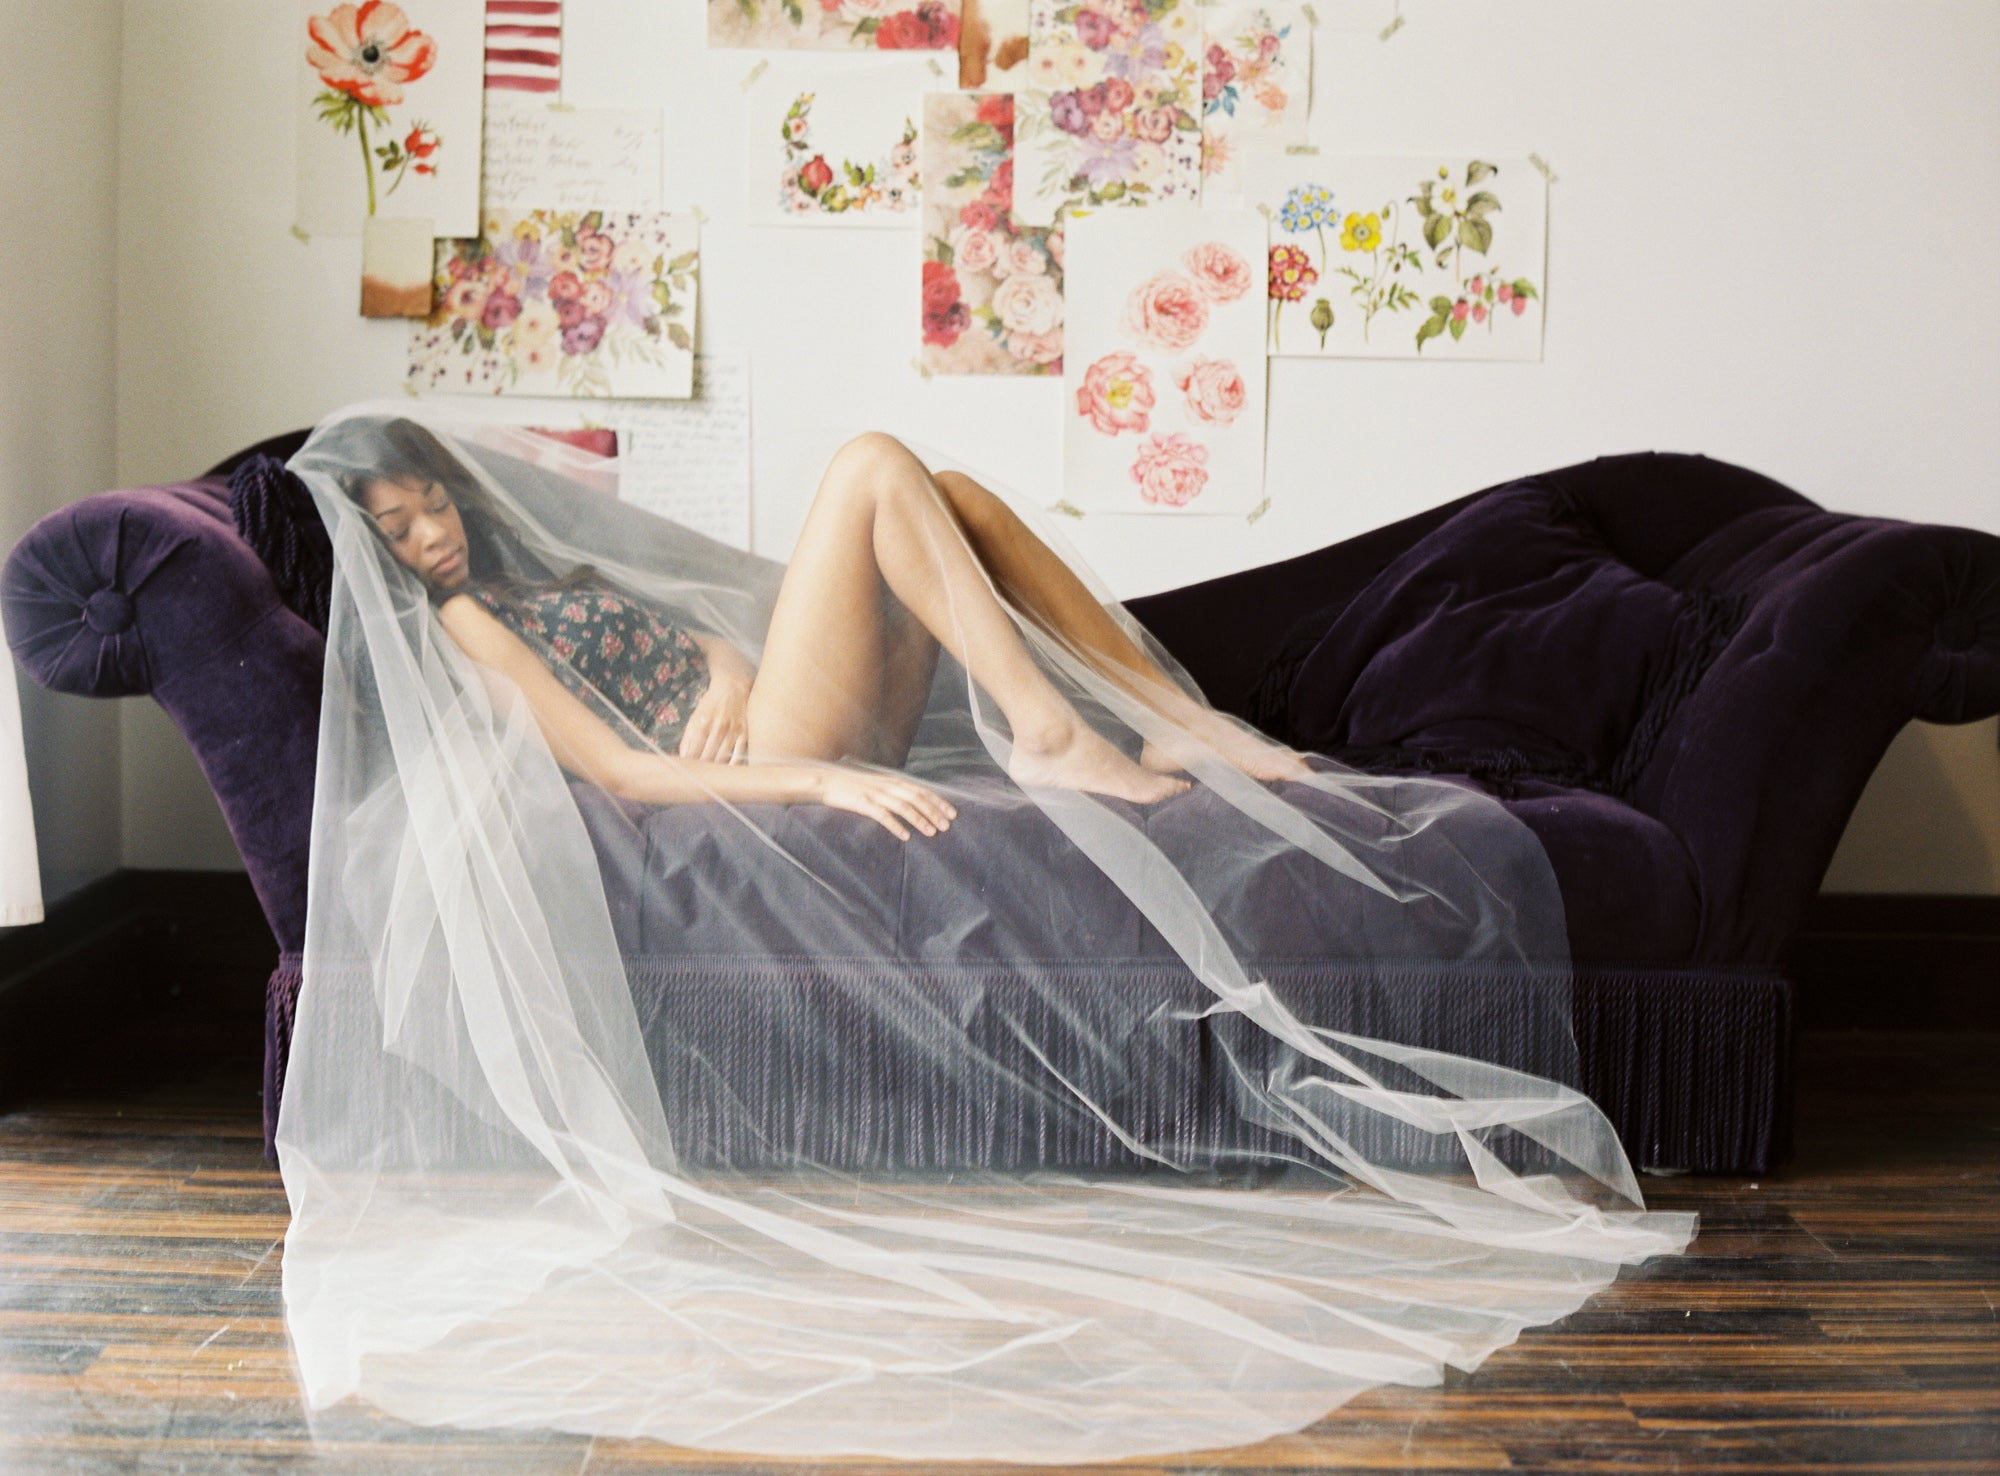 cathedral wedding veil bridal boudoir photo shoot